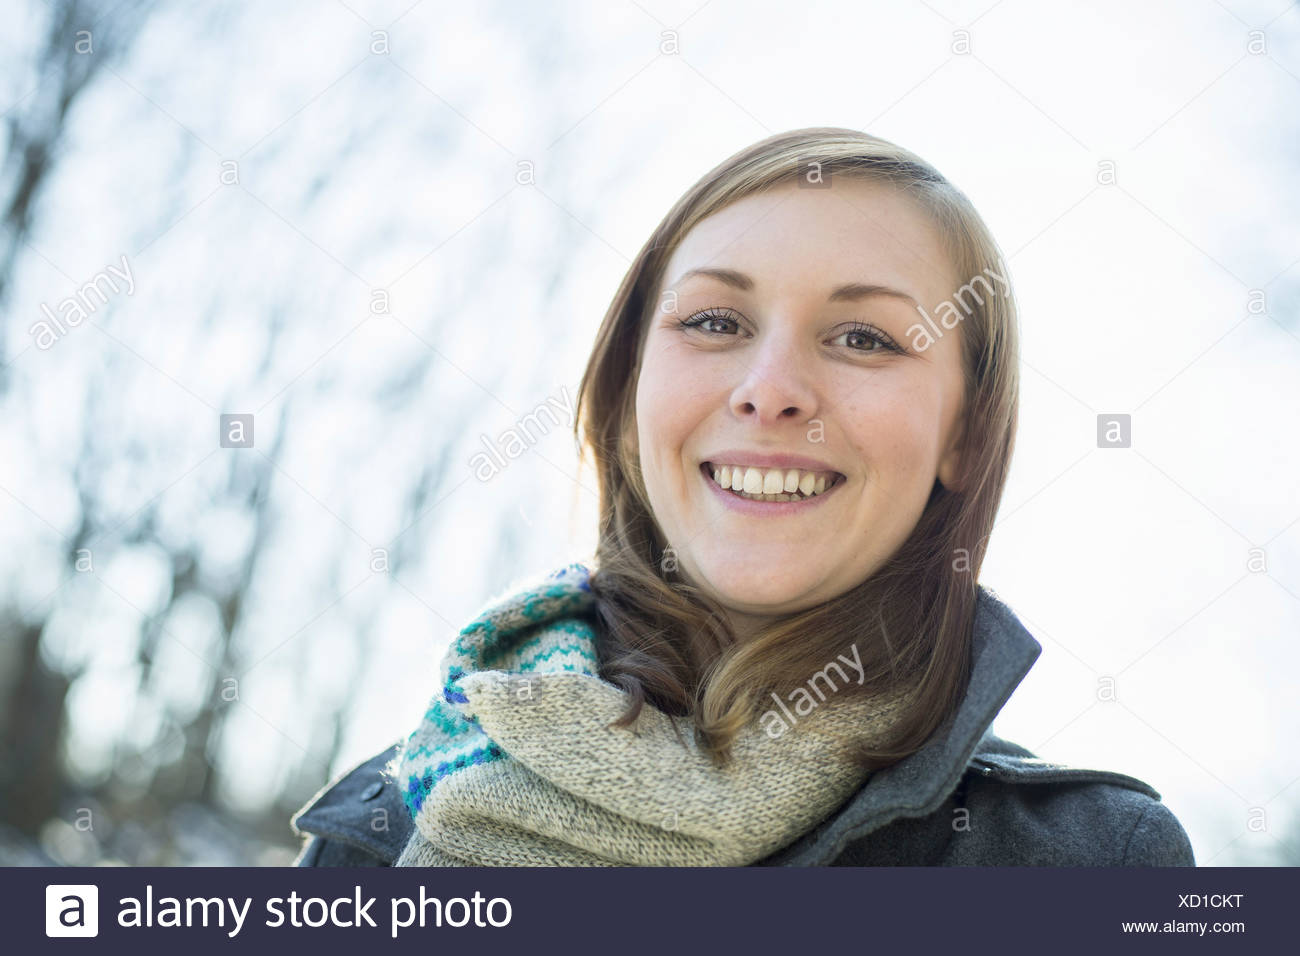 A young woman in a scarf and coat outside on a winter day - Stock Image